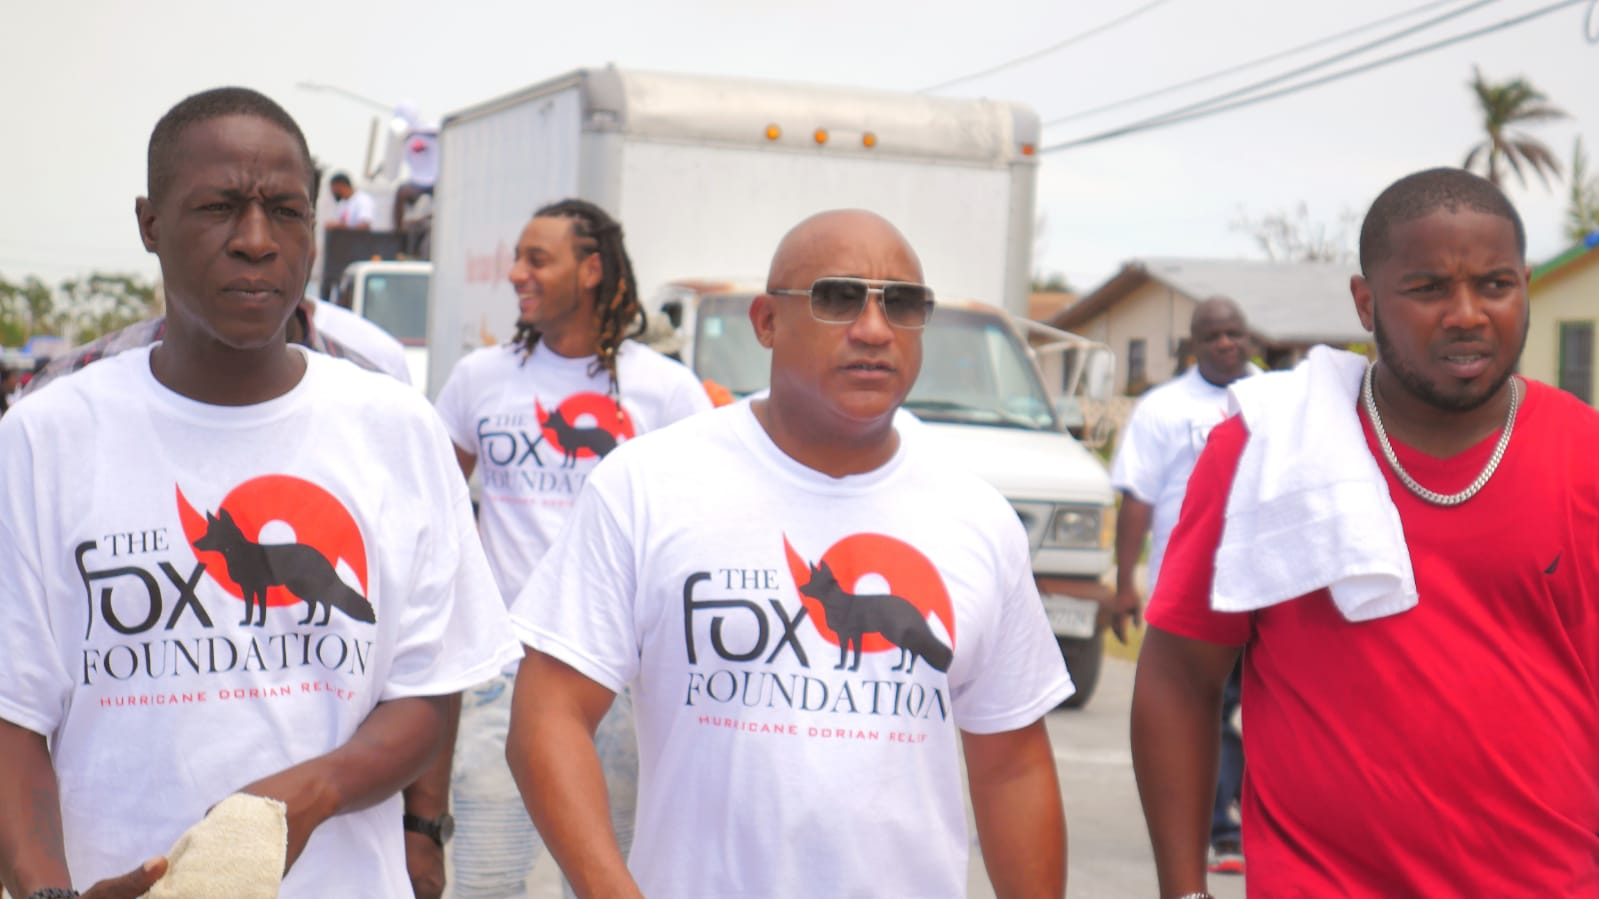 Adrian Fox with members of The Fox Foundation bringing aid to the victims of Hurricane Dorian in Grand Bahama